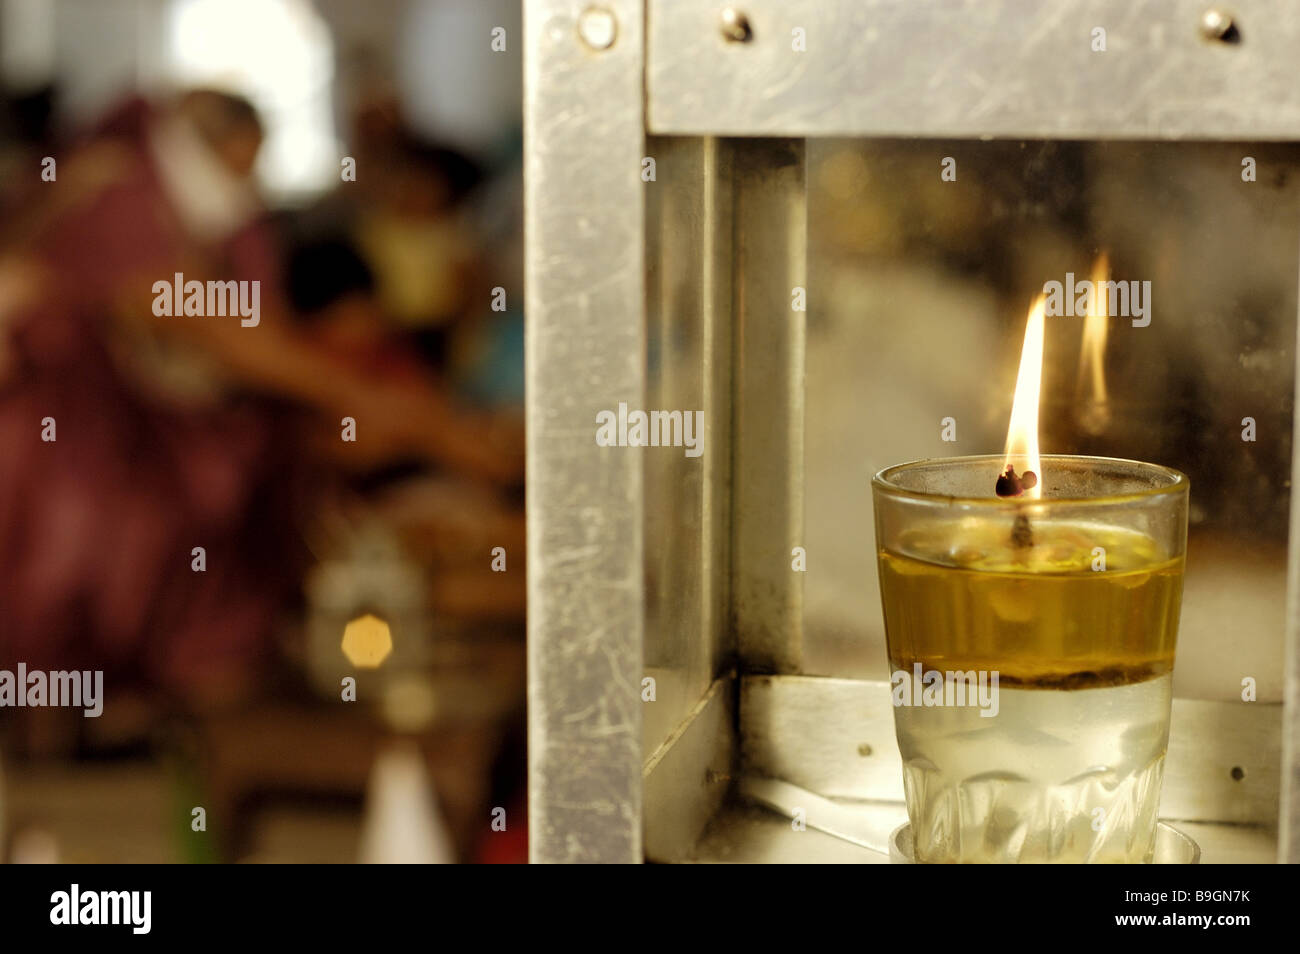 Oil Lamp Burning Fuzziness Light Lamp Glass Oil Wick Candle Wind Light  Fires Flame India Belief Religion Rite Mood Full Burning